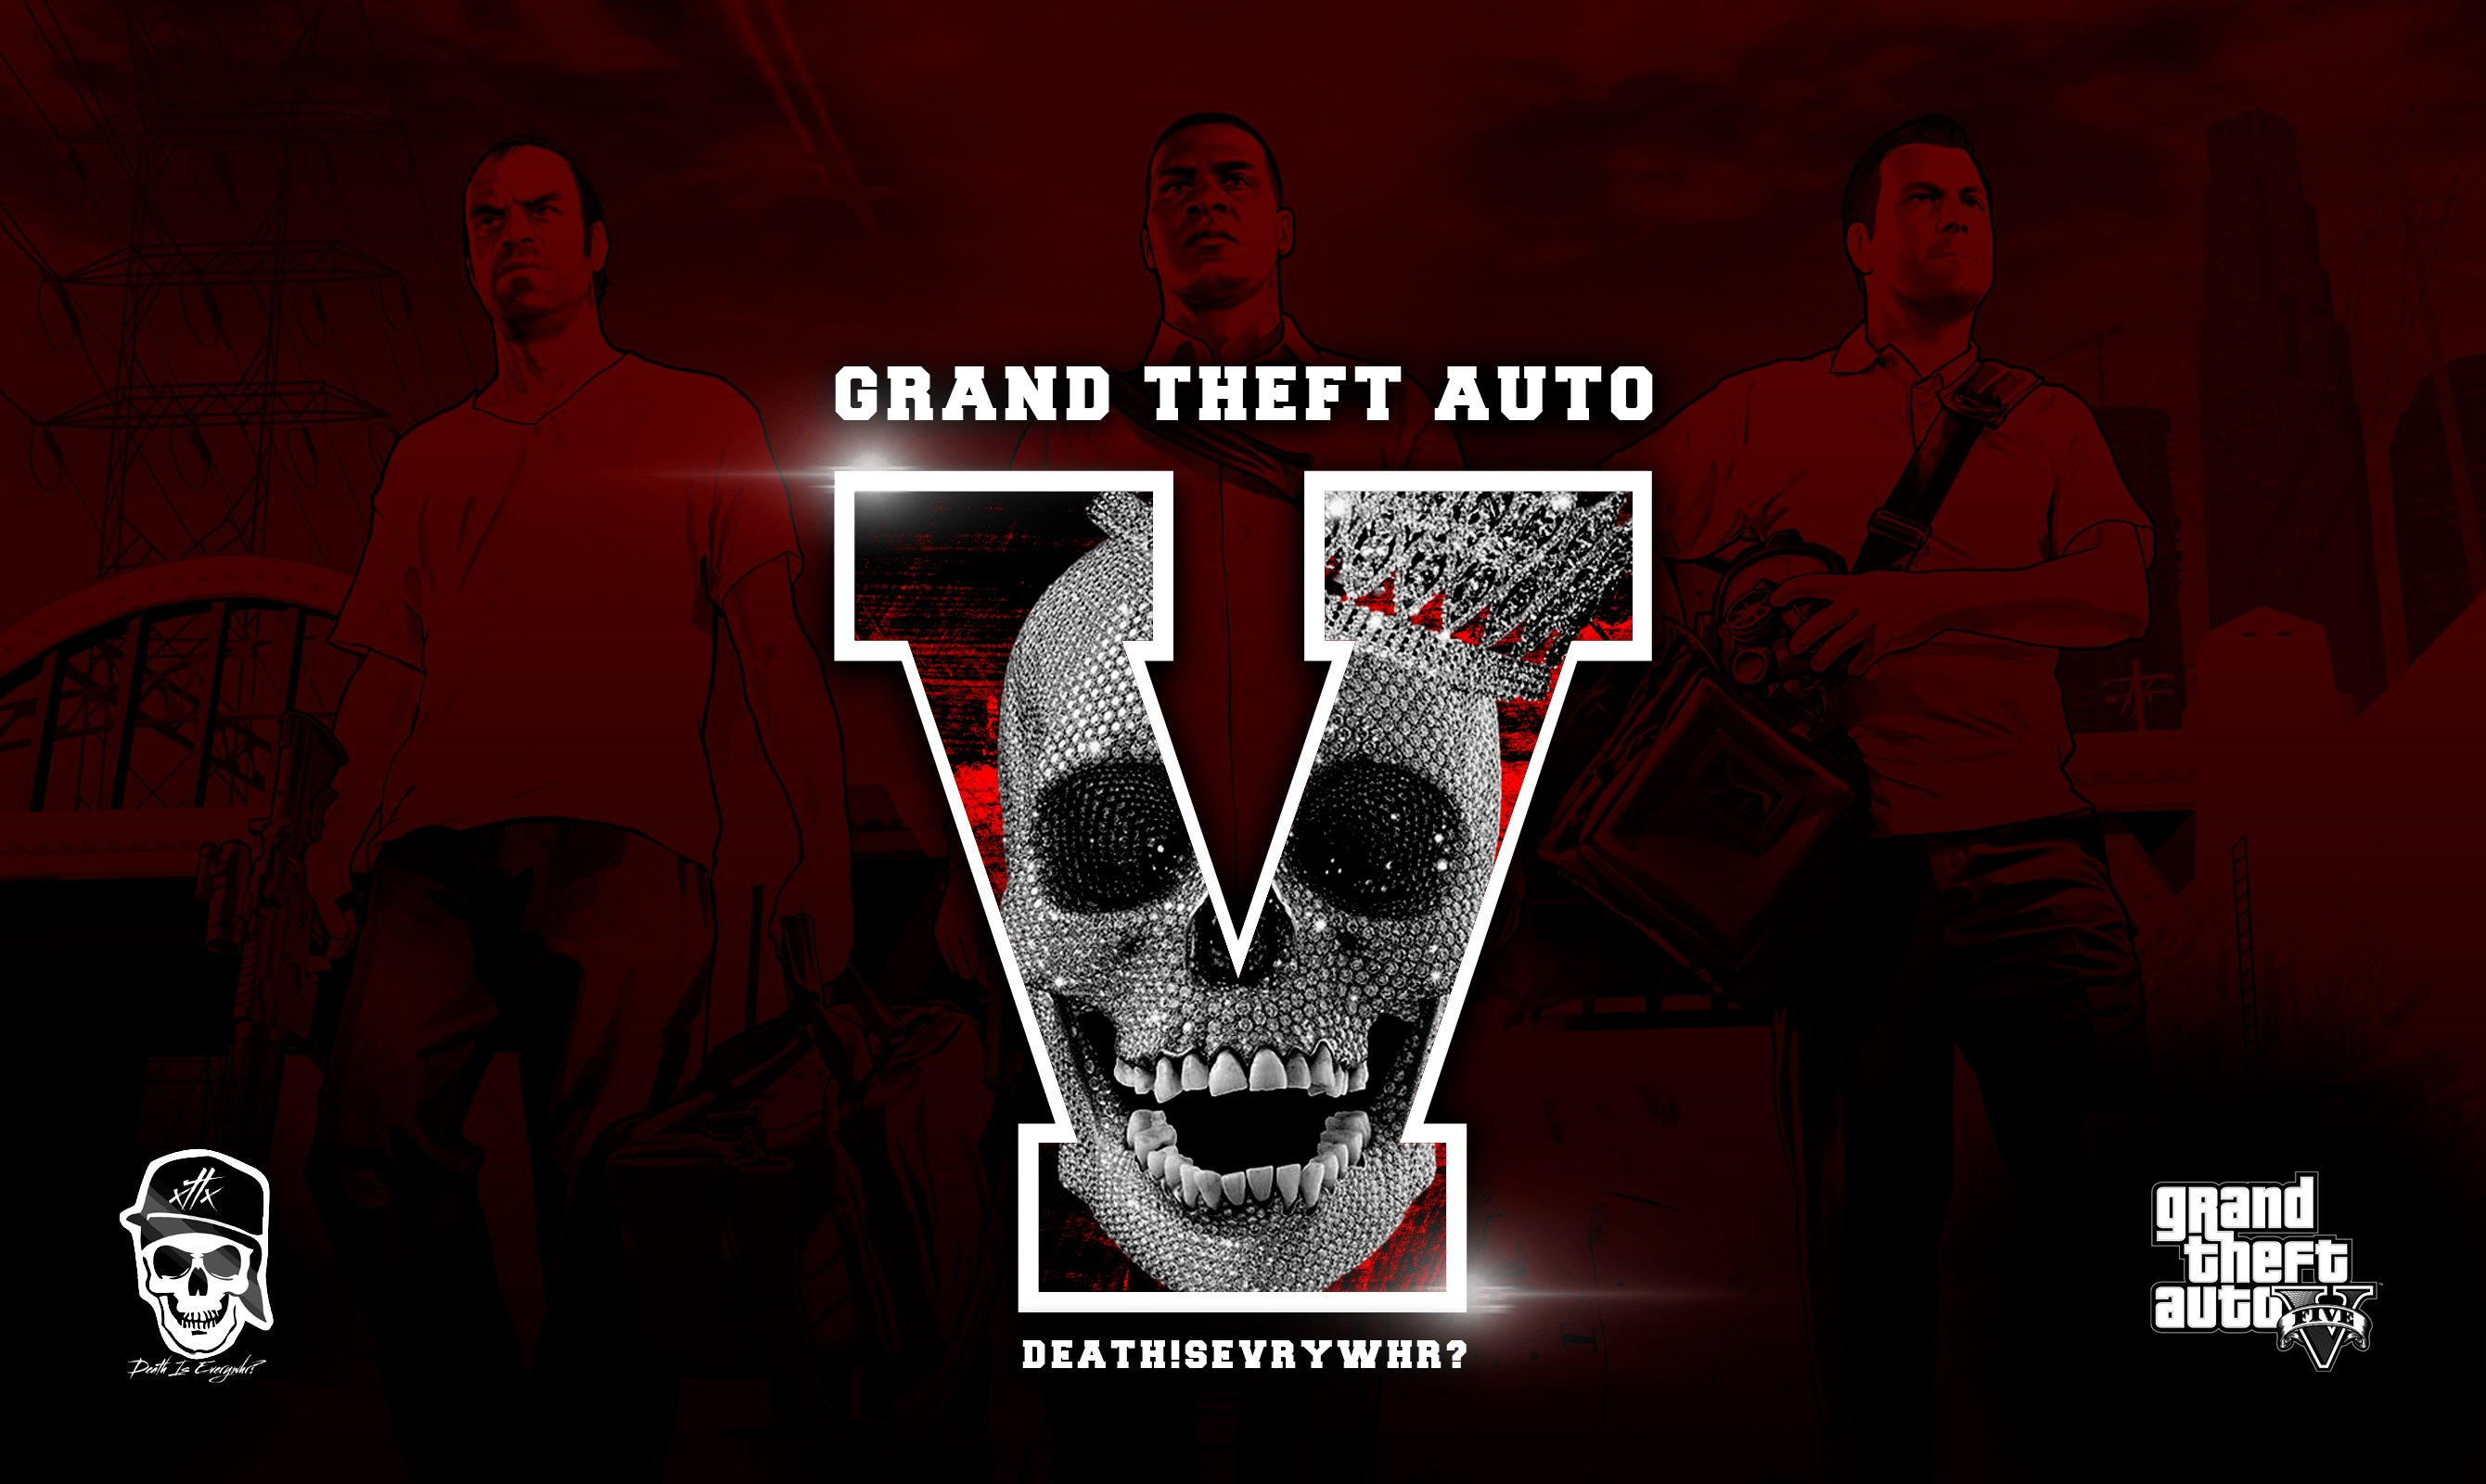 Gta 5 Online Wallpaper Xt gta5 wallpaper 2680x1600